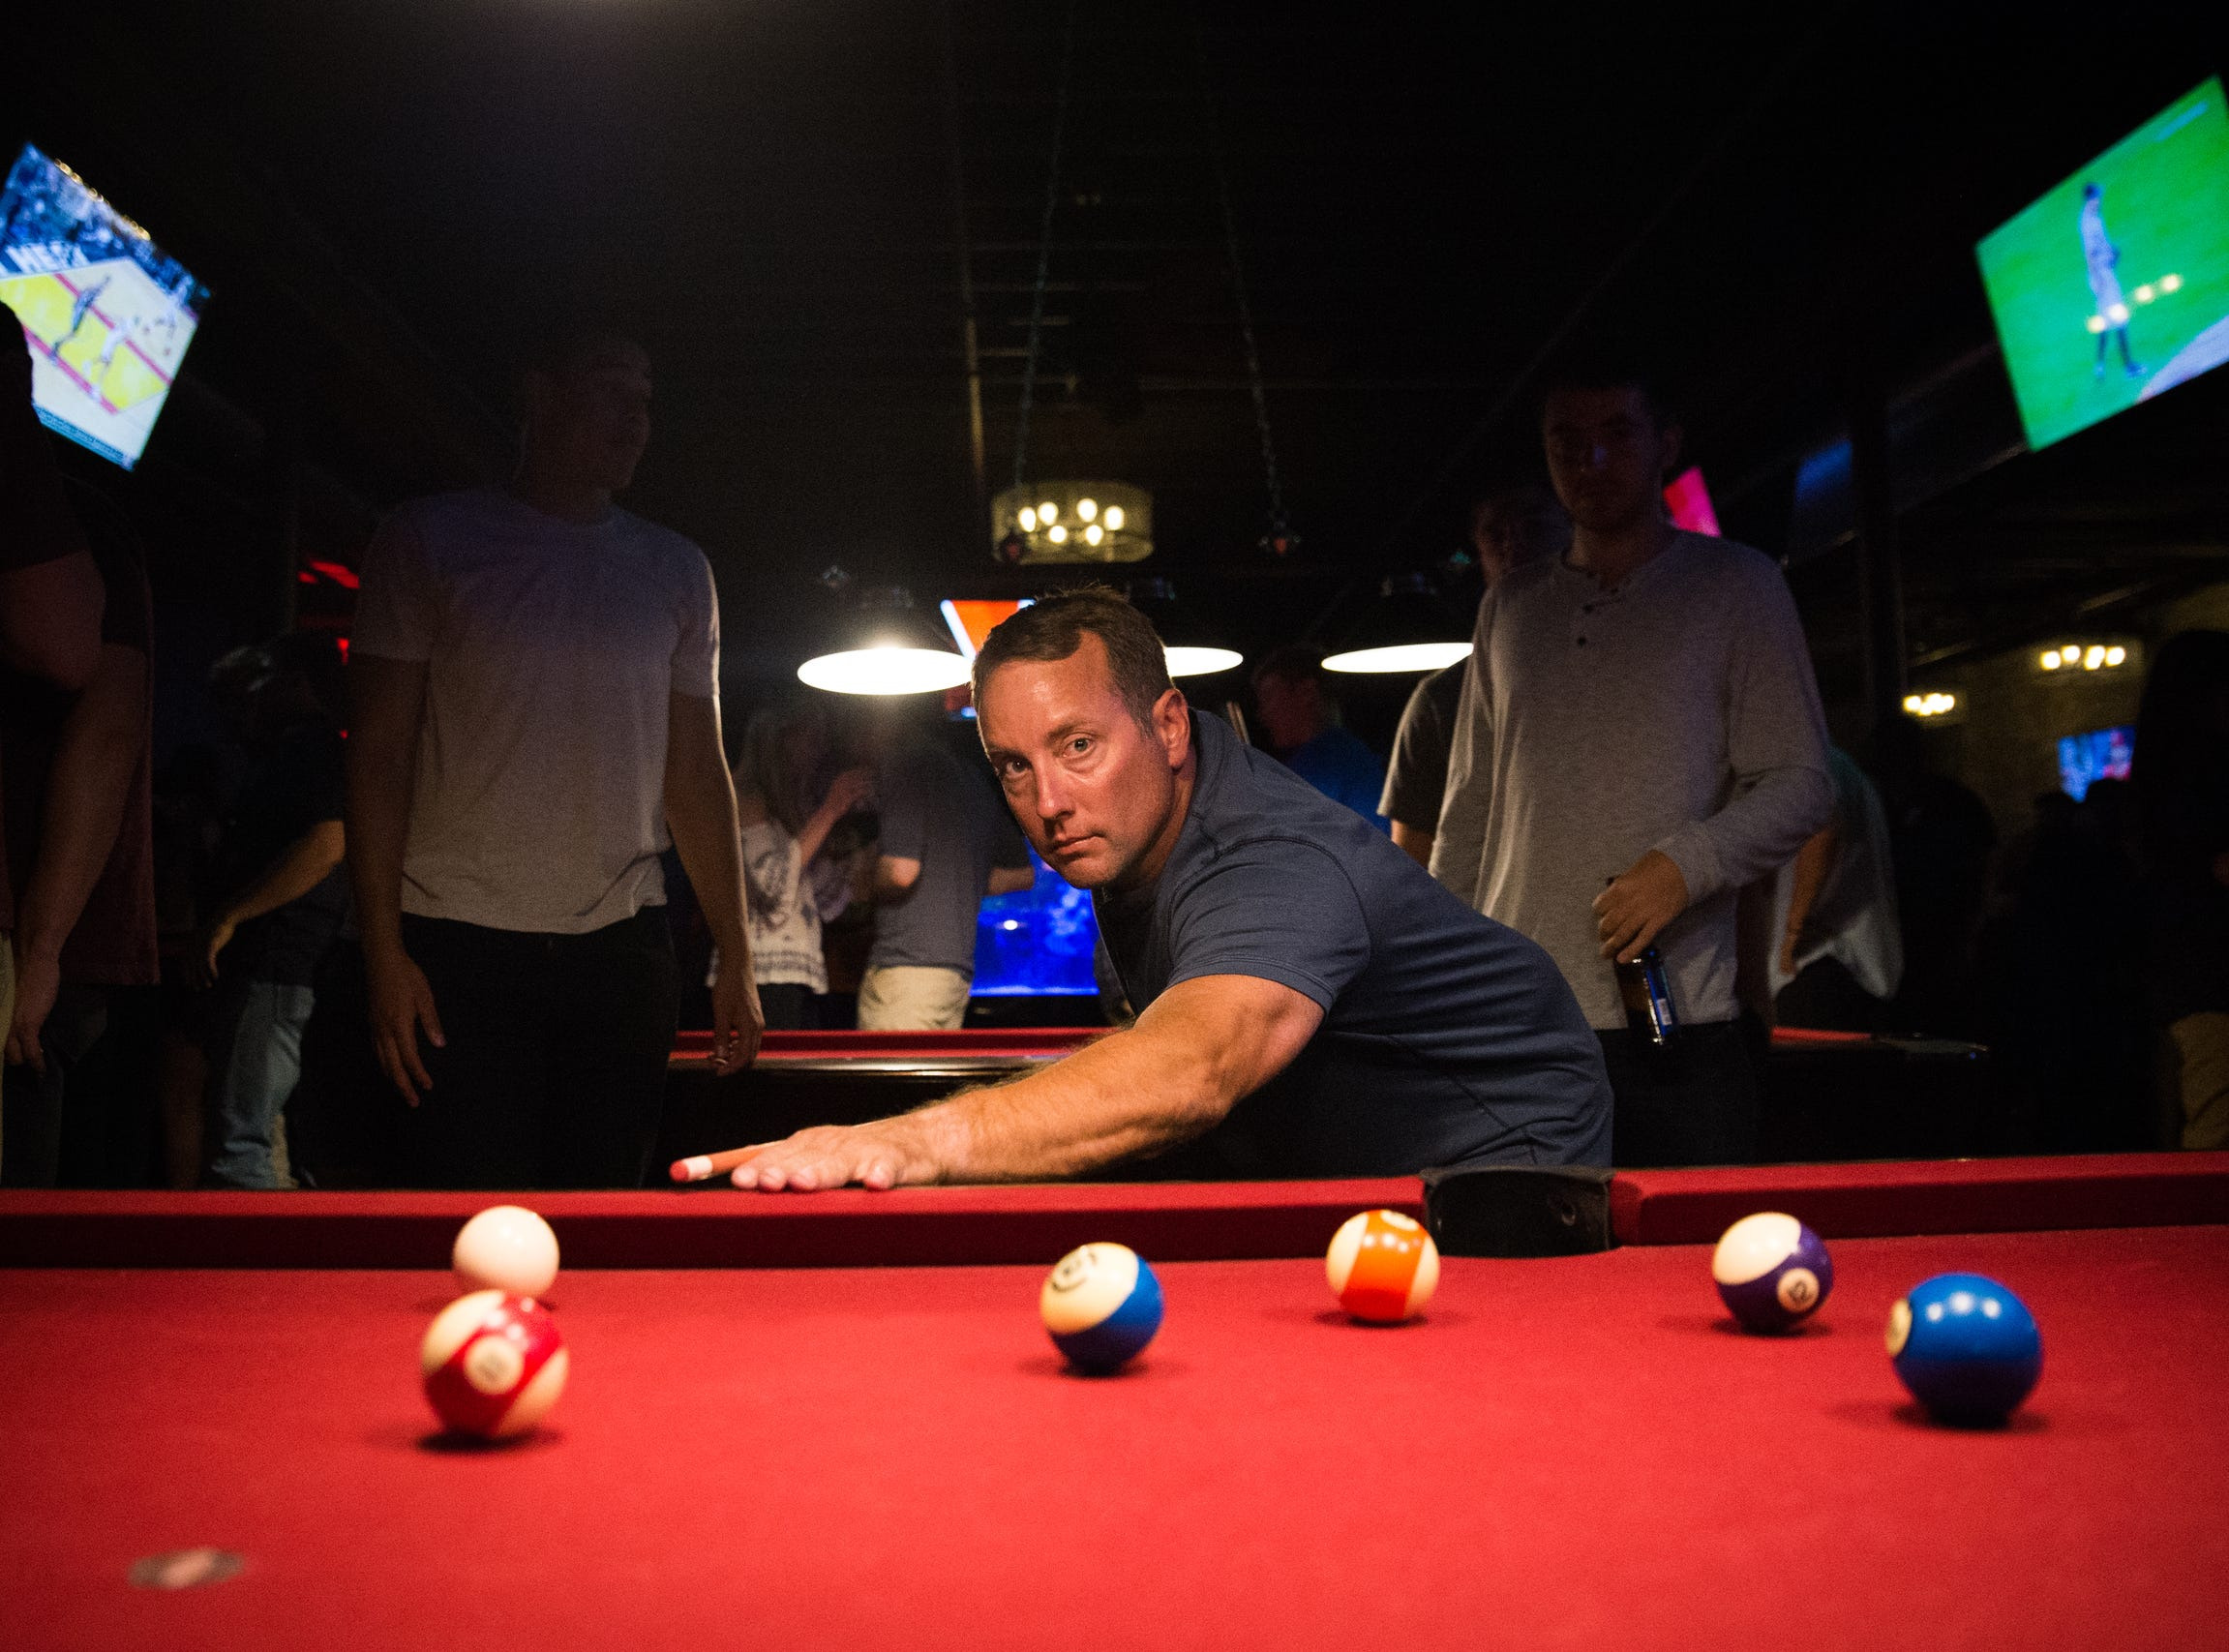 Dan Johnson of New Baltimore plays pool at Fifth Avenue nightclub in Royal Oak on Friday, July 20, 2018.